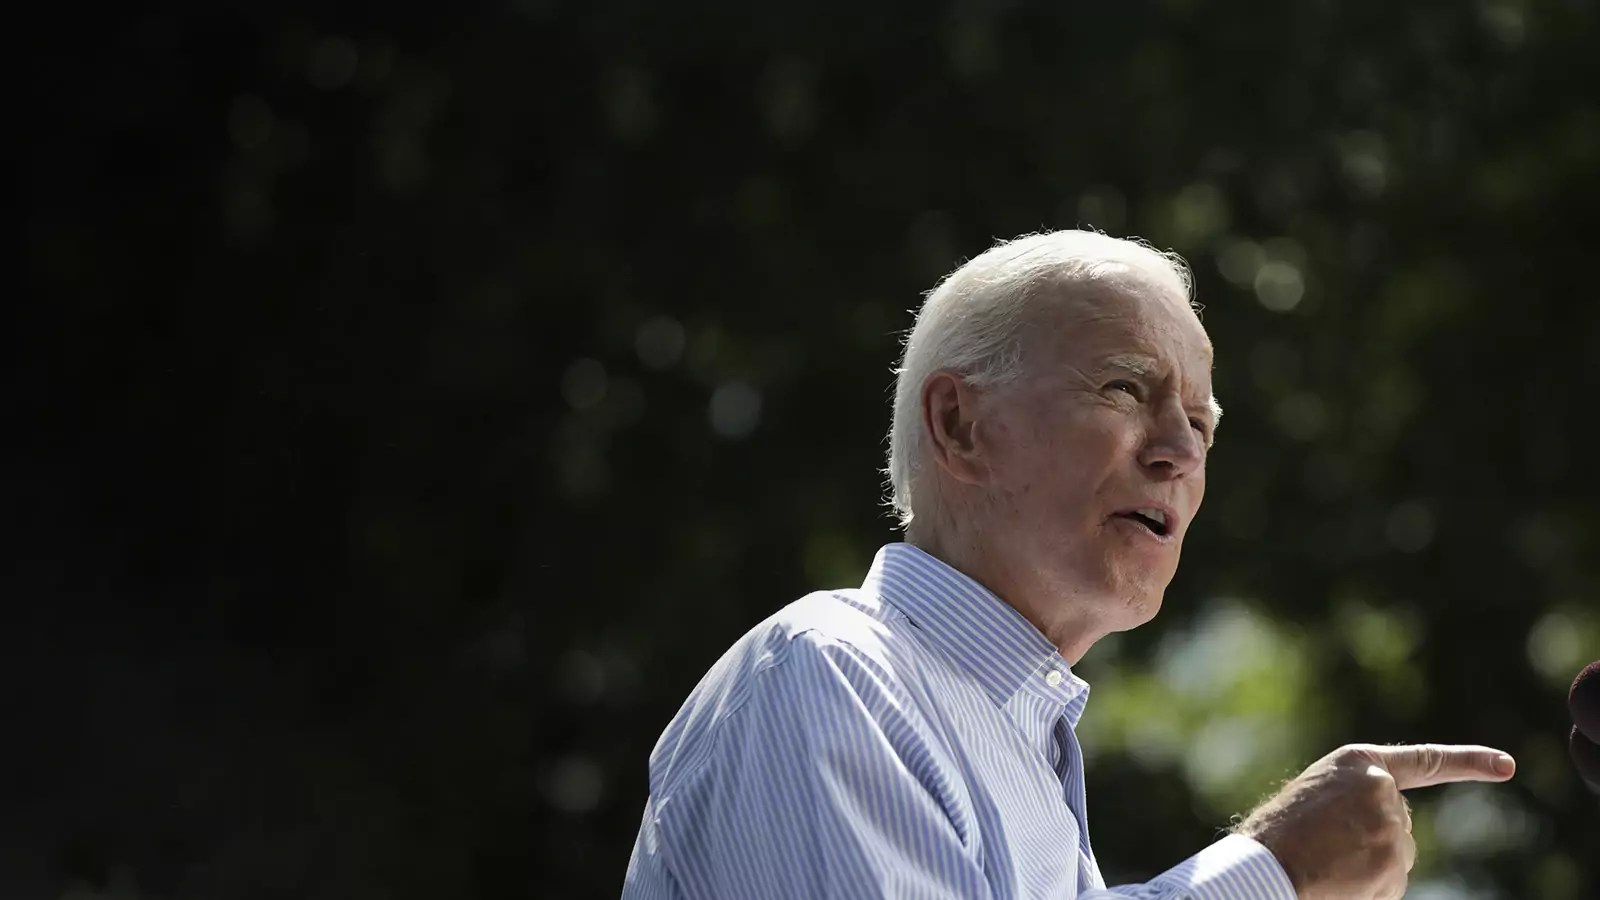 Joe Biden Answers Our Foreign Policy Questions